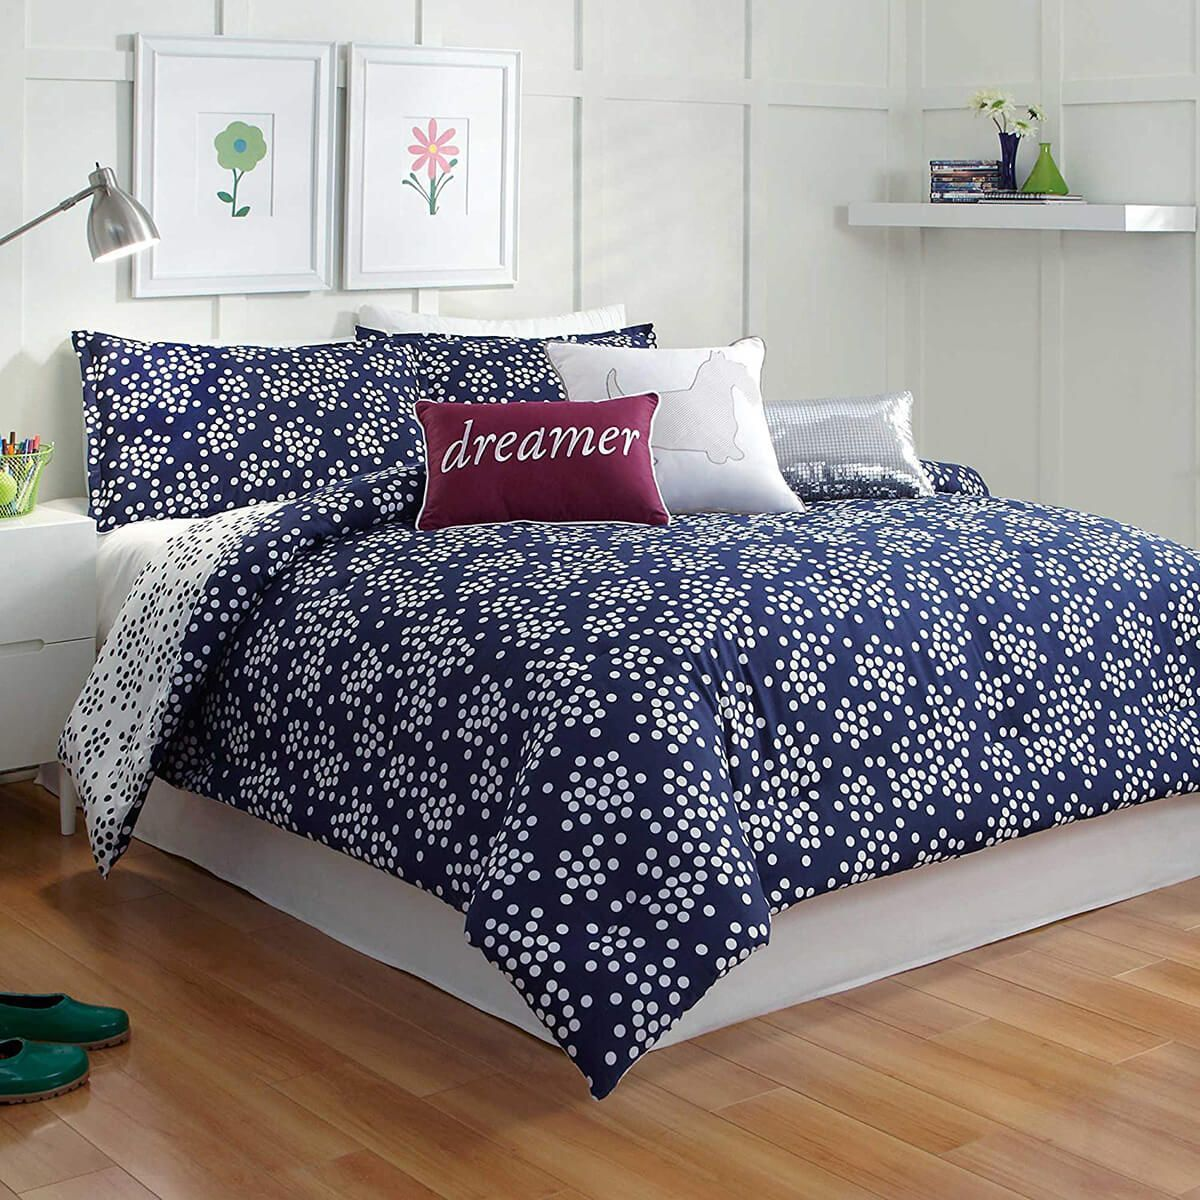 16 Navy Blue Bedroom Design And Decor Ideas For A Timeless Makeover Blue Bedroom Design Twin Xl Bedding Sets Blue Bedroom Navy blue twin xl comforter